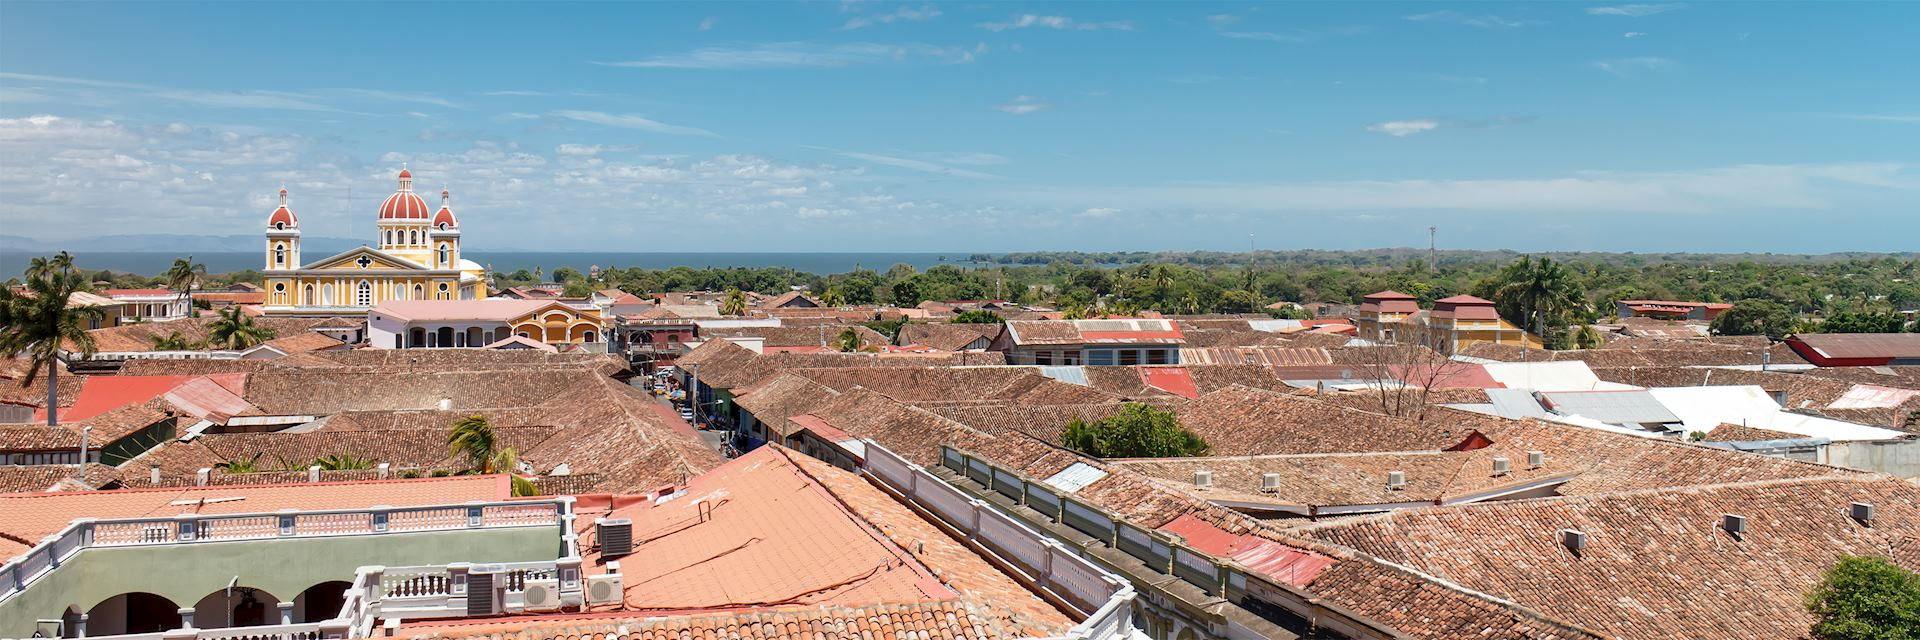 Granada Cathedral and rooftops, Nicaragua